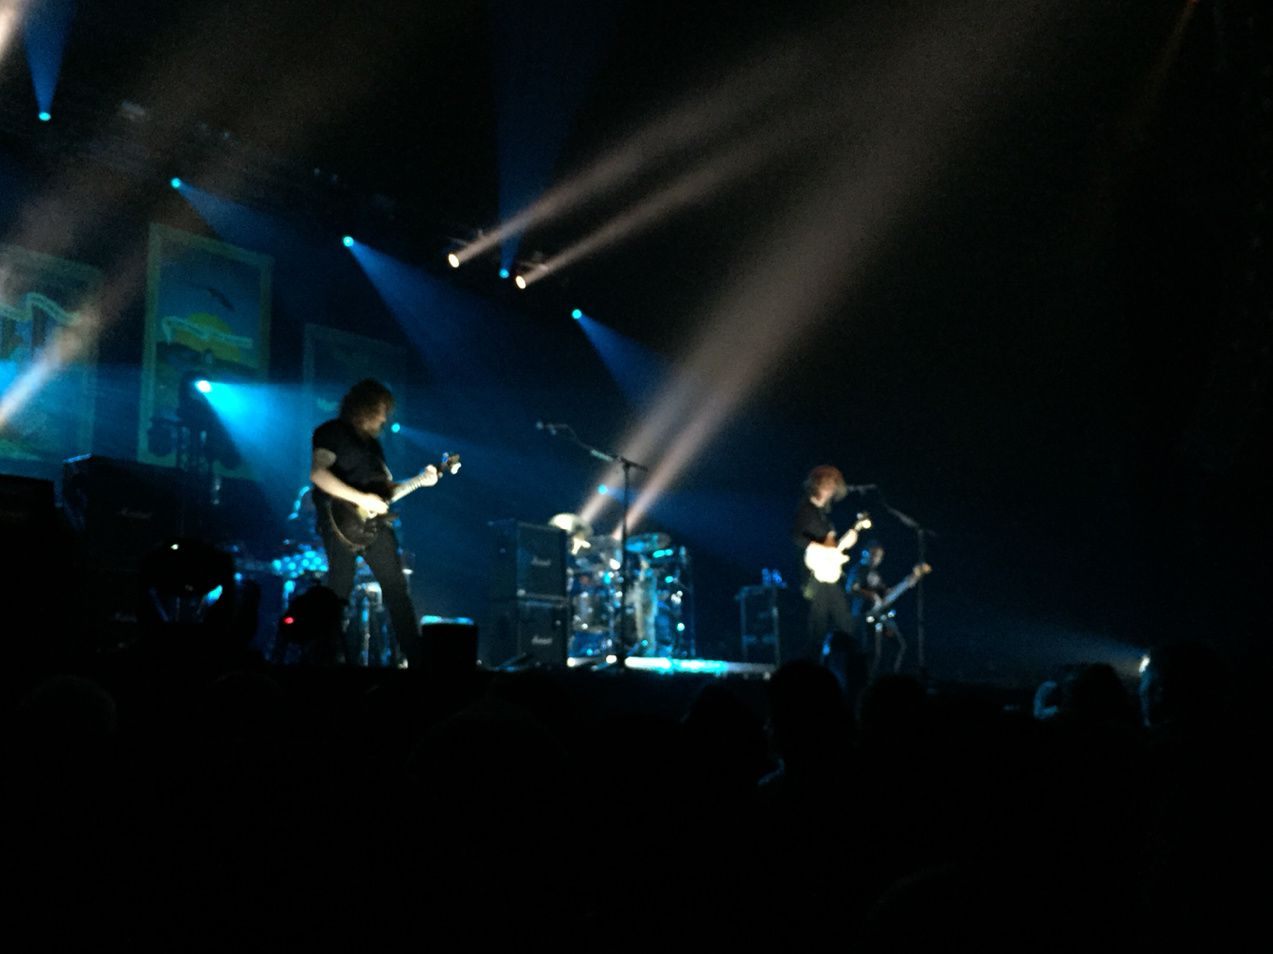 OPETH live - now